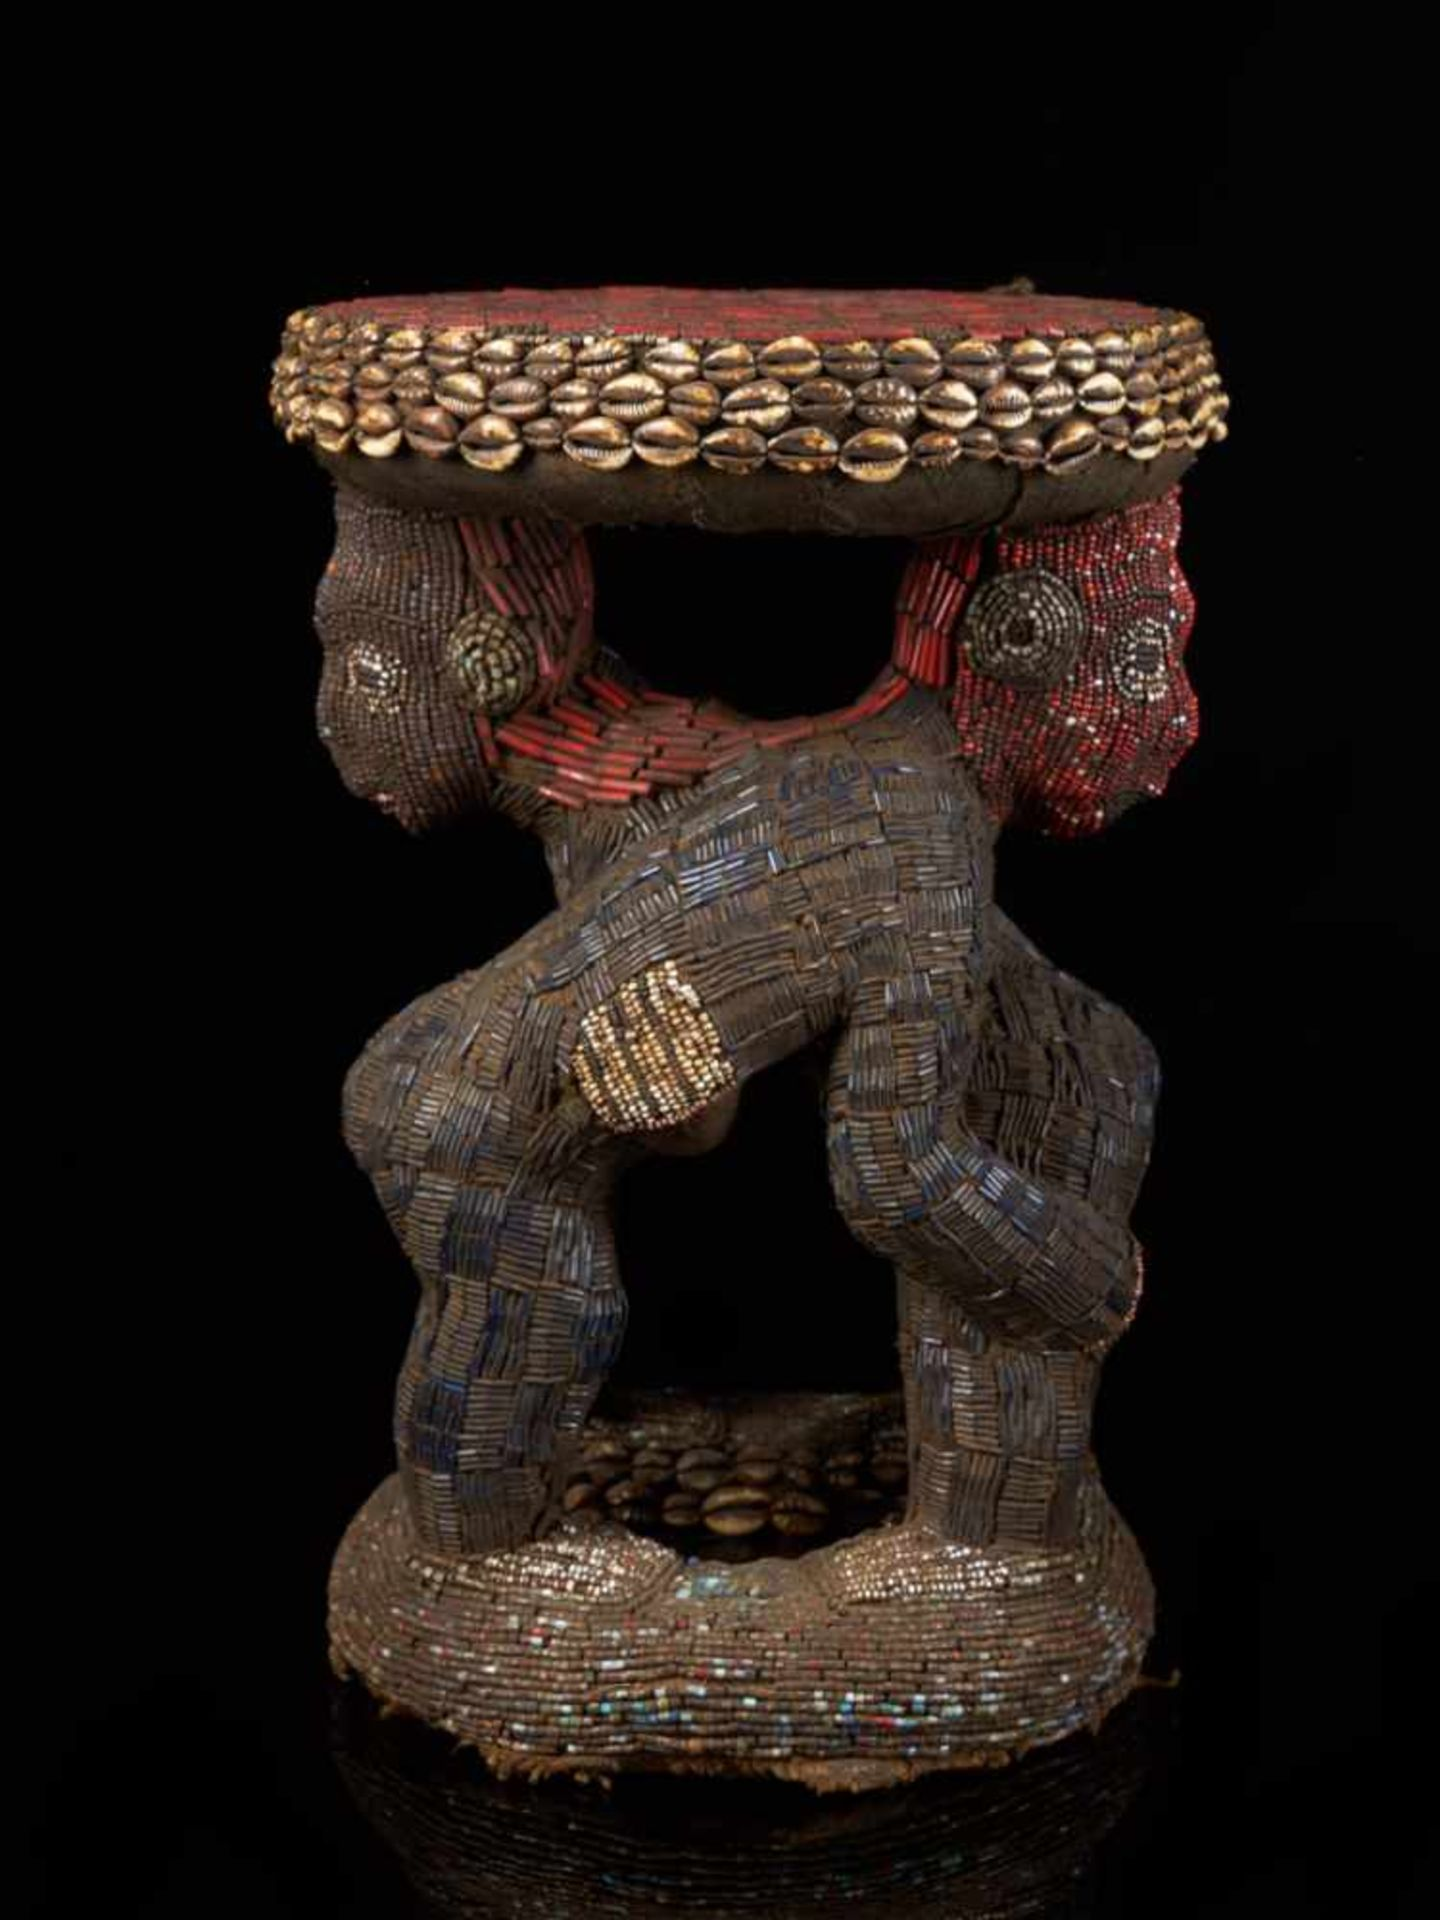 Beaded Royal Stool Supported By Two Figures - Tribal ArtThis exquisite stool has a round base and - Bild 5 aus 5